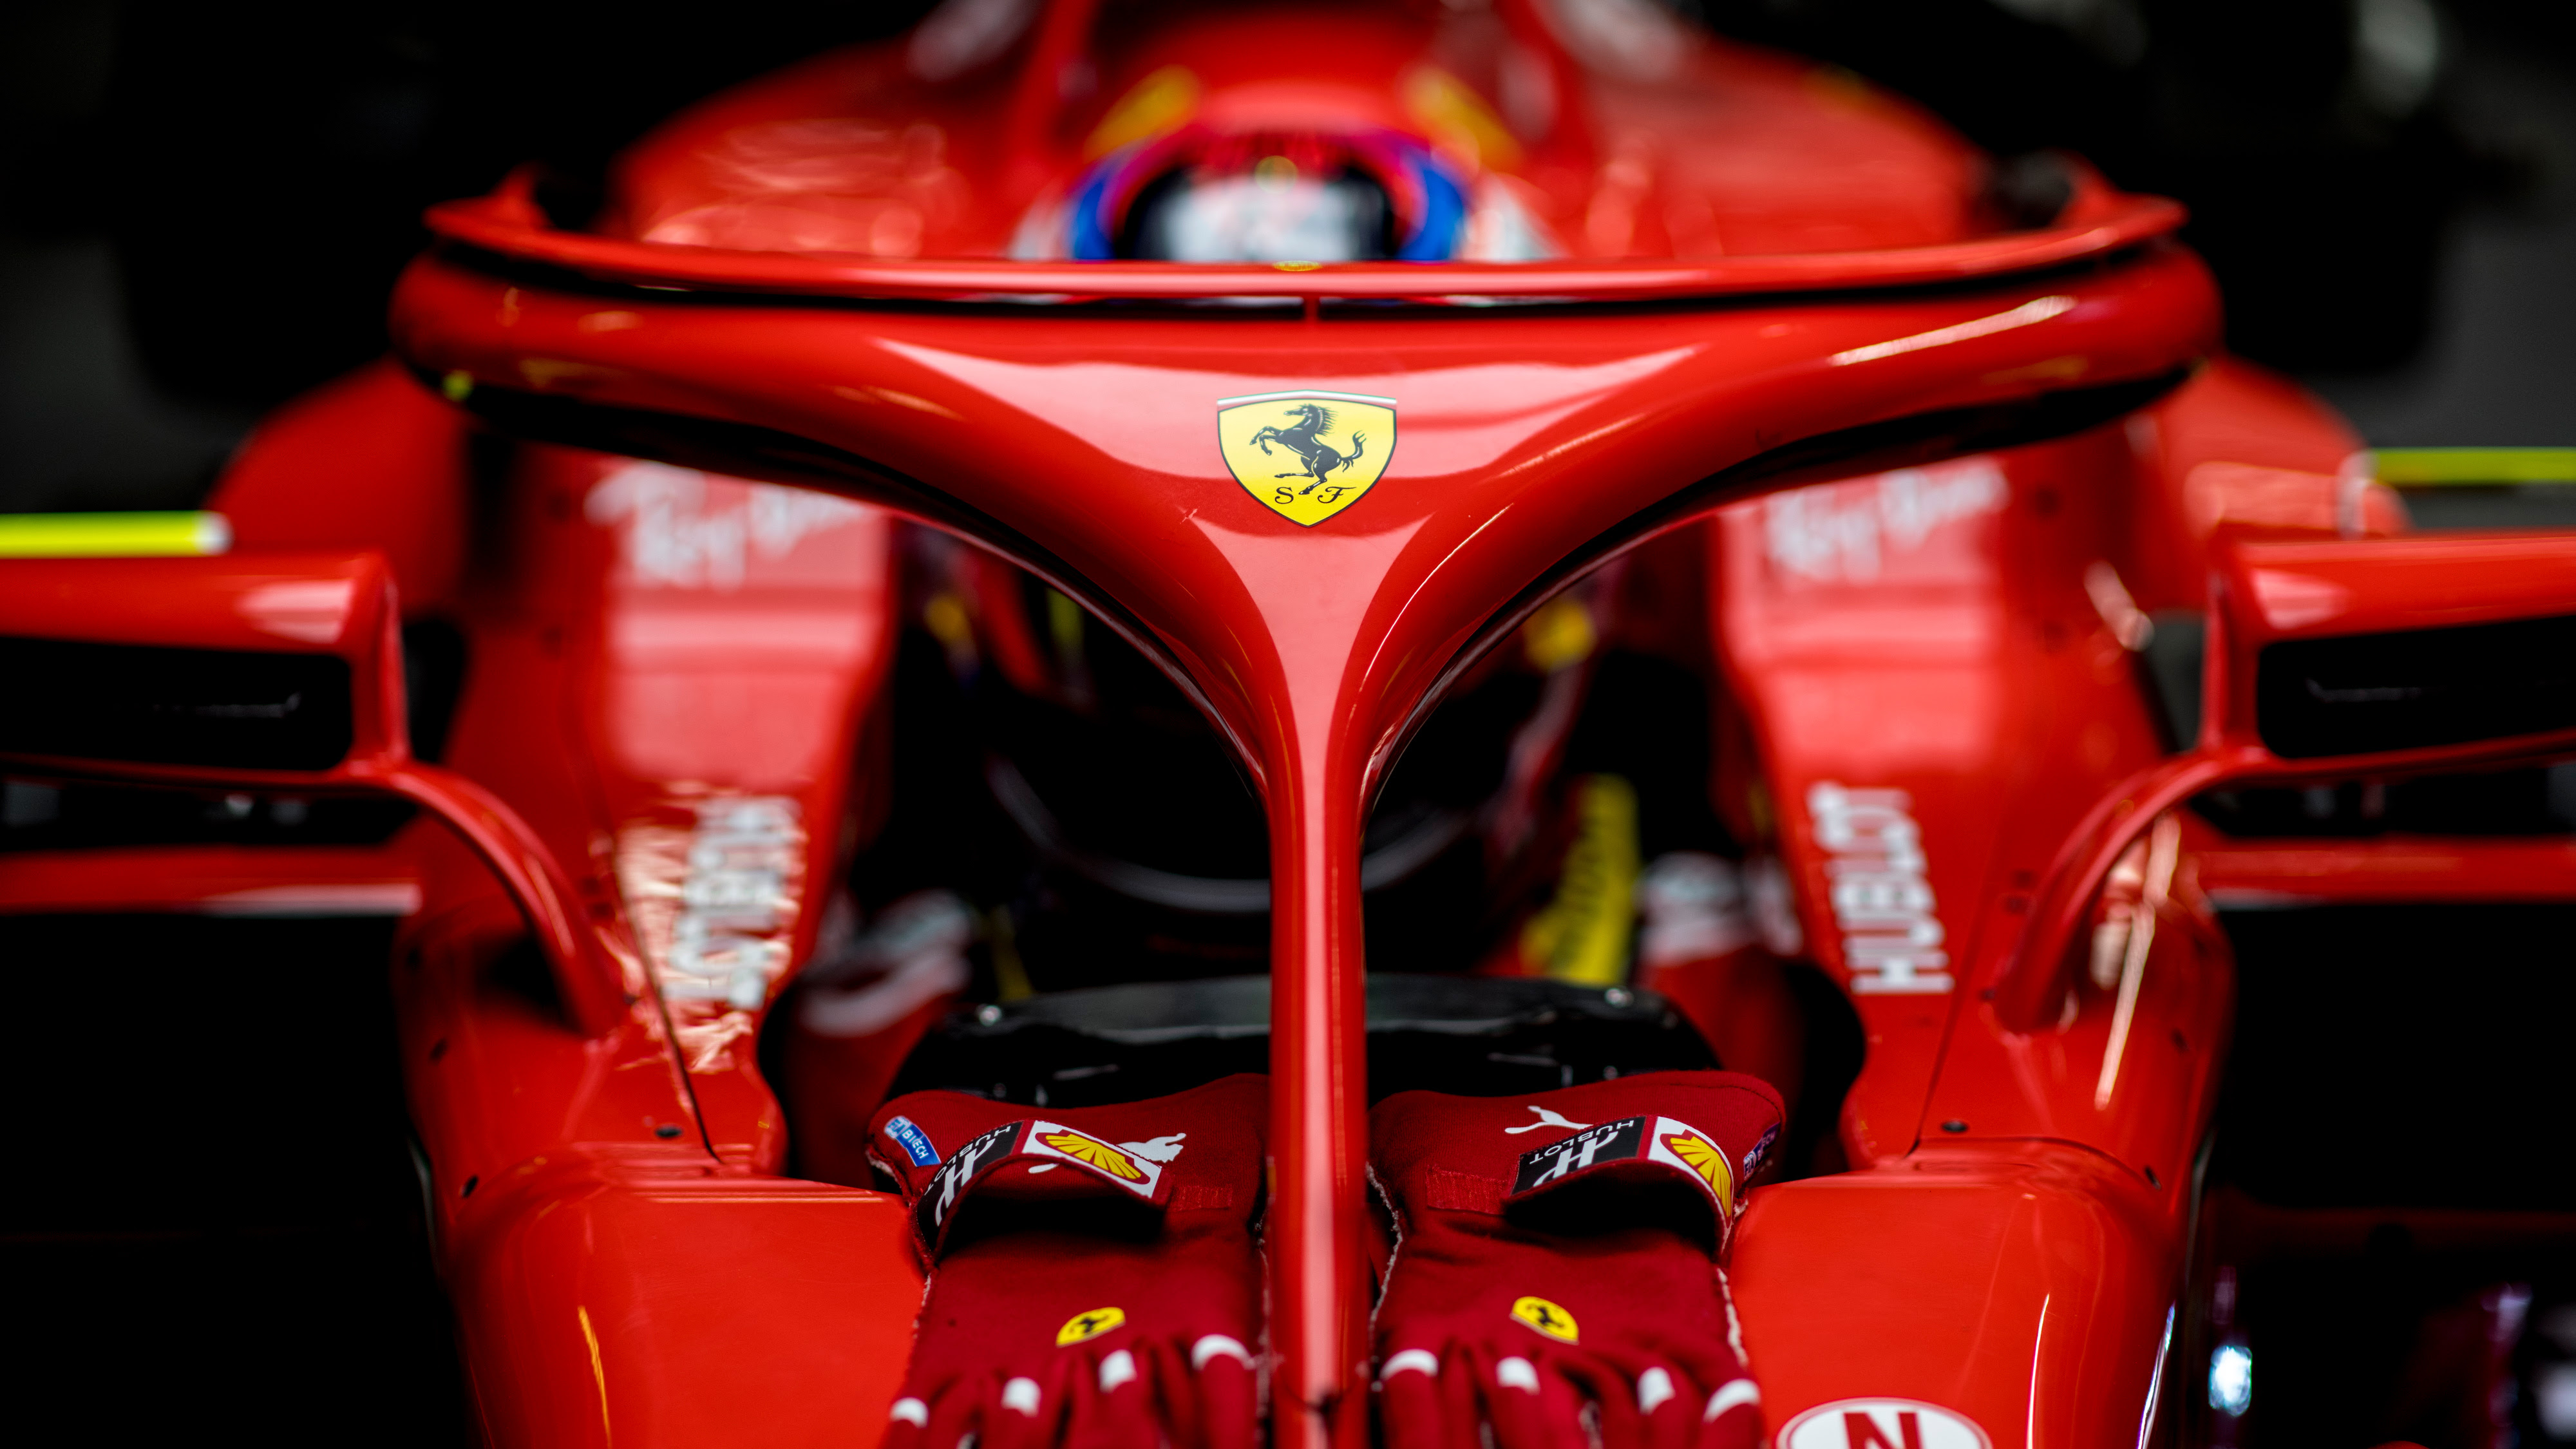 Sports Wallpapers Ferrari F1 Iphone Wallpaper 2018 2017 Hd Cityconnectapps